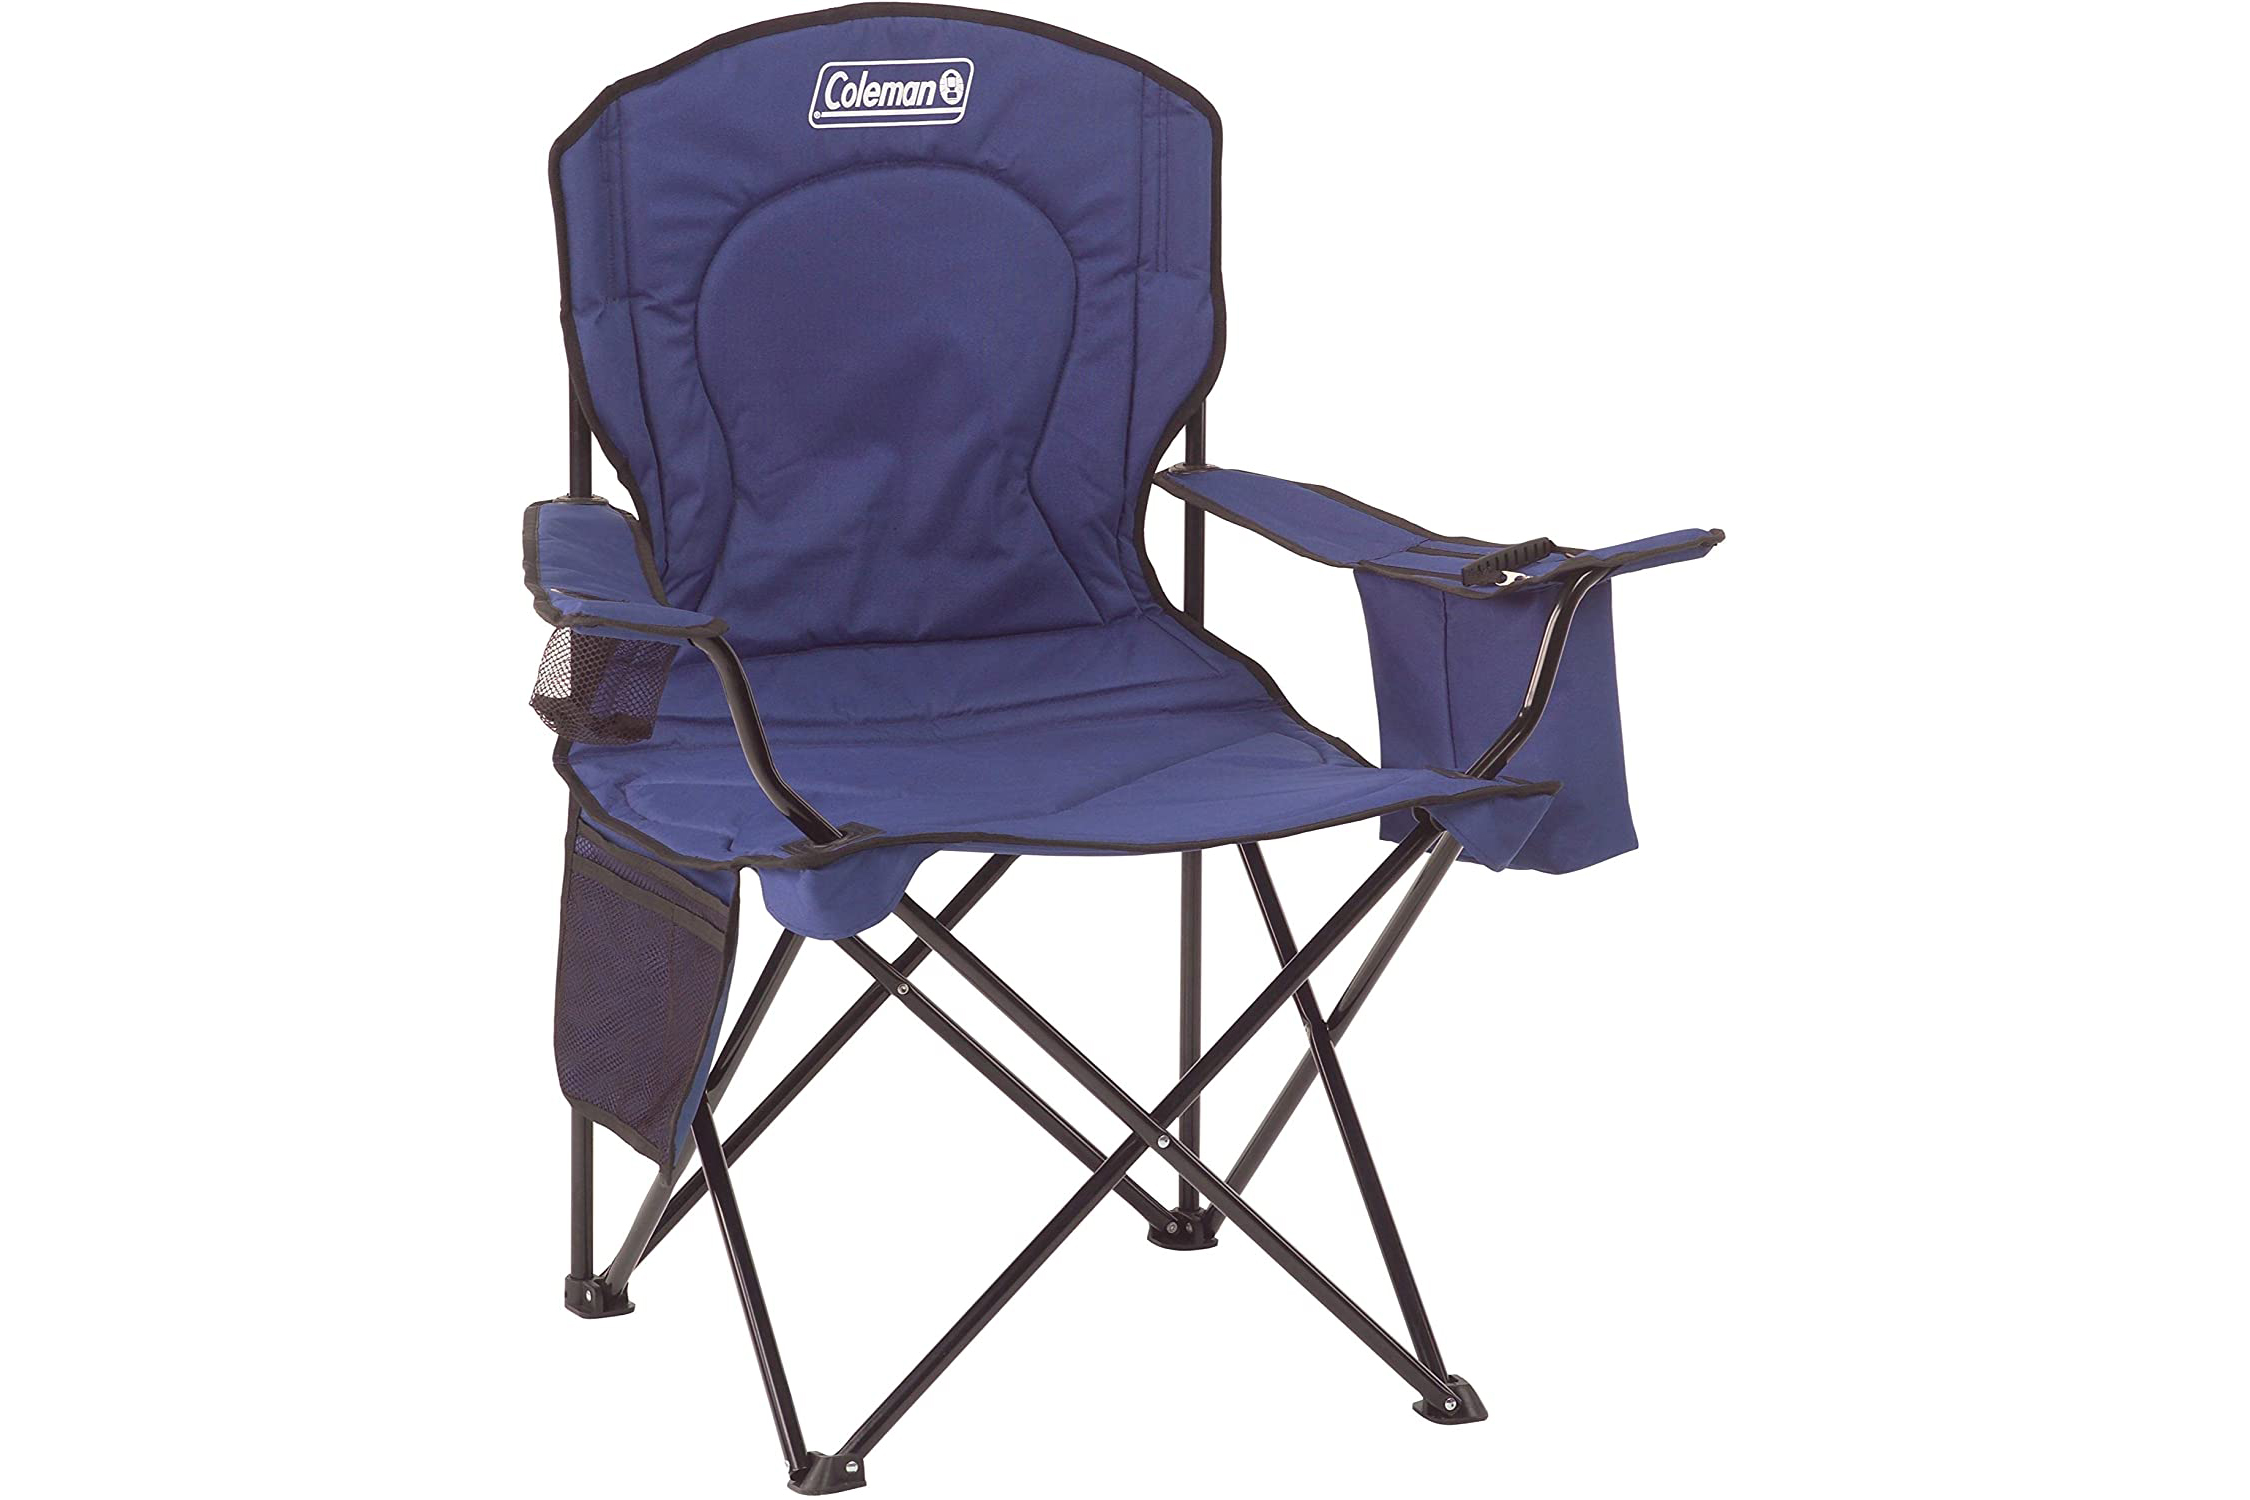 Coleman Quad Camping Chair-